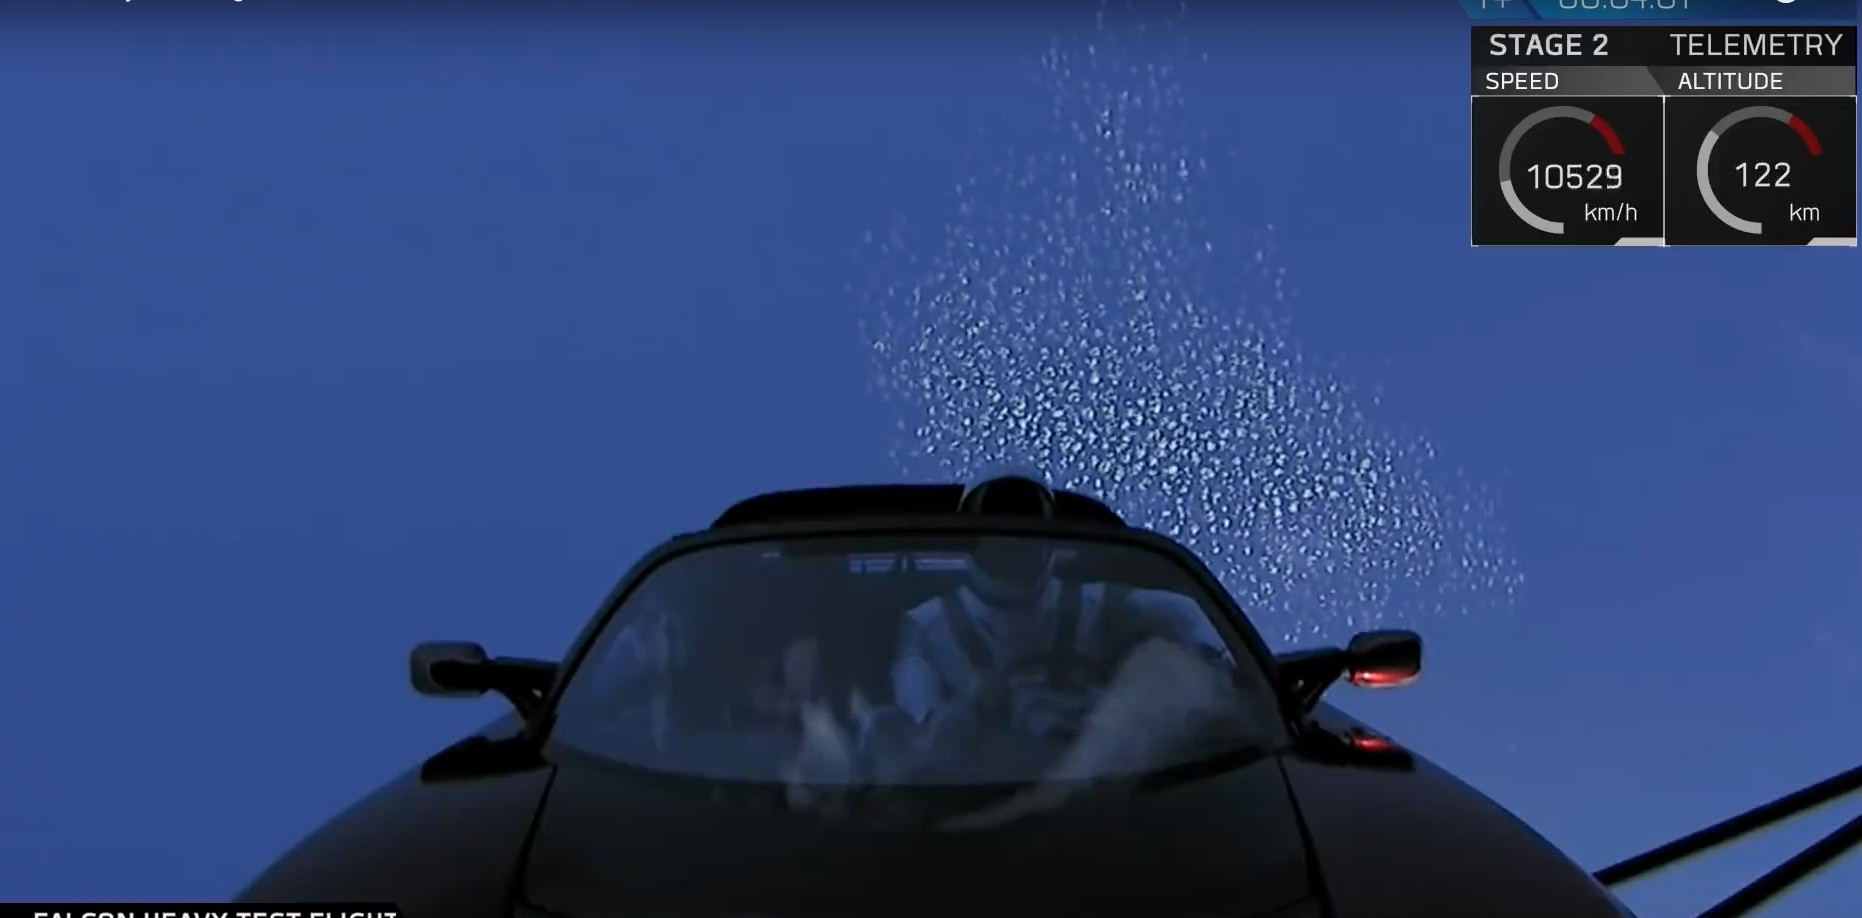 tesla car in space live. tesla roadster in space car live